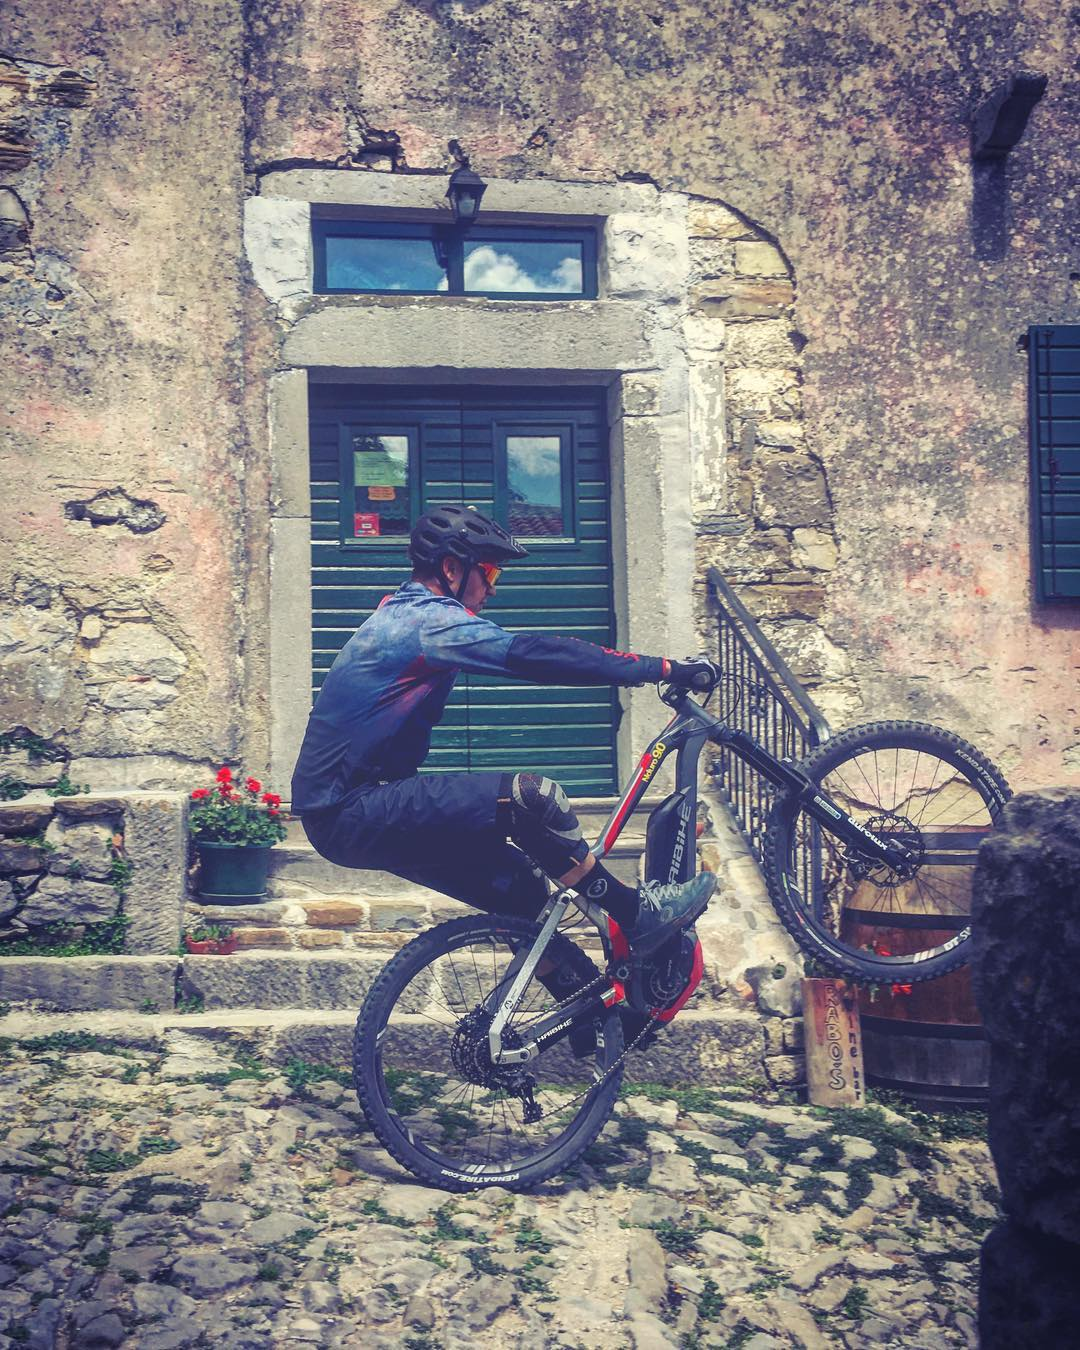 Manual down the 900 year old streets of Hum, Croatia #wheeliewednesday #emtb #biking